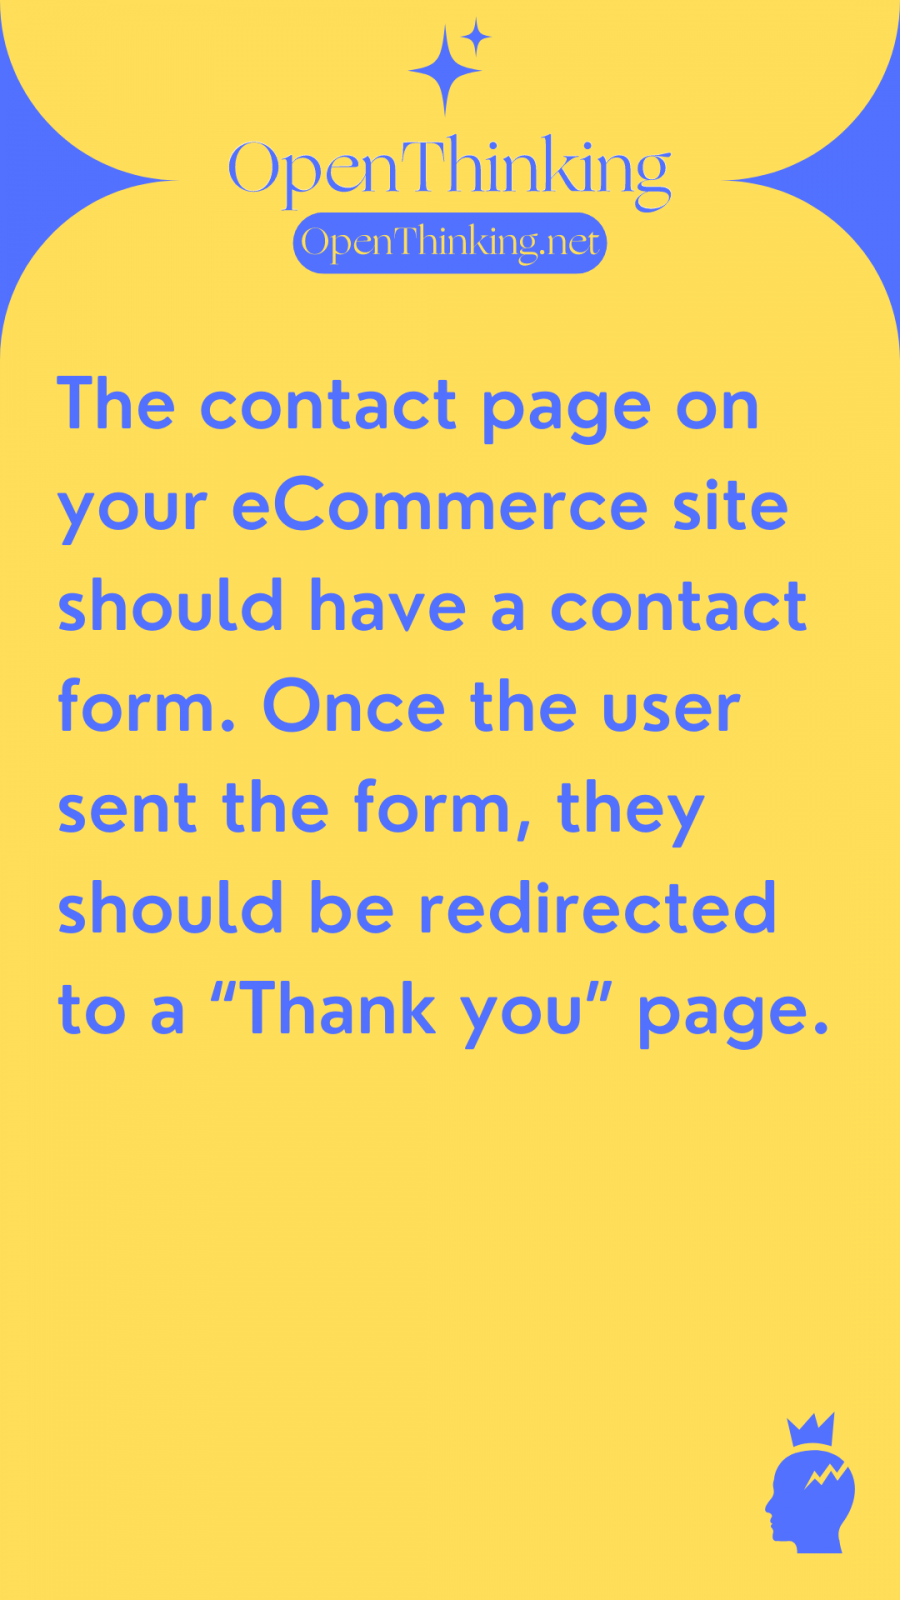 Shopify eCommerce guide contact page